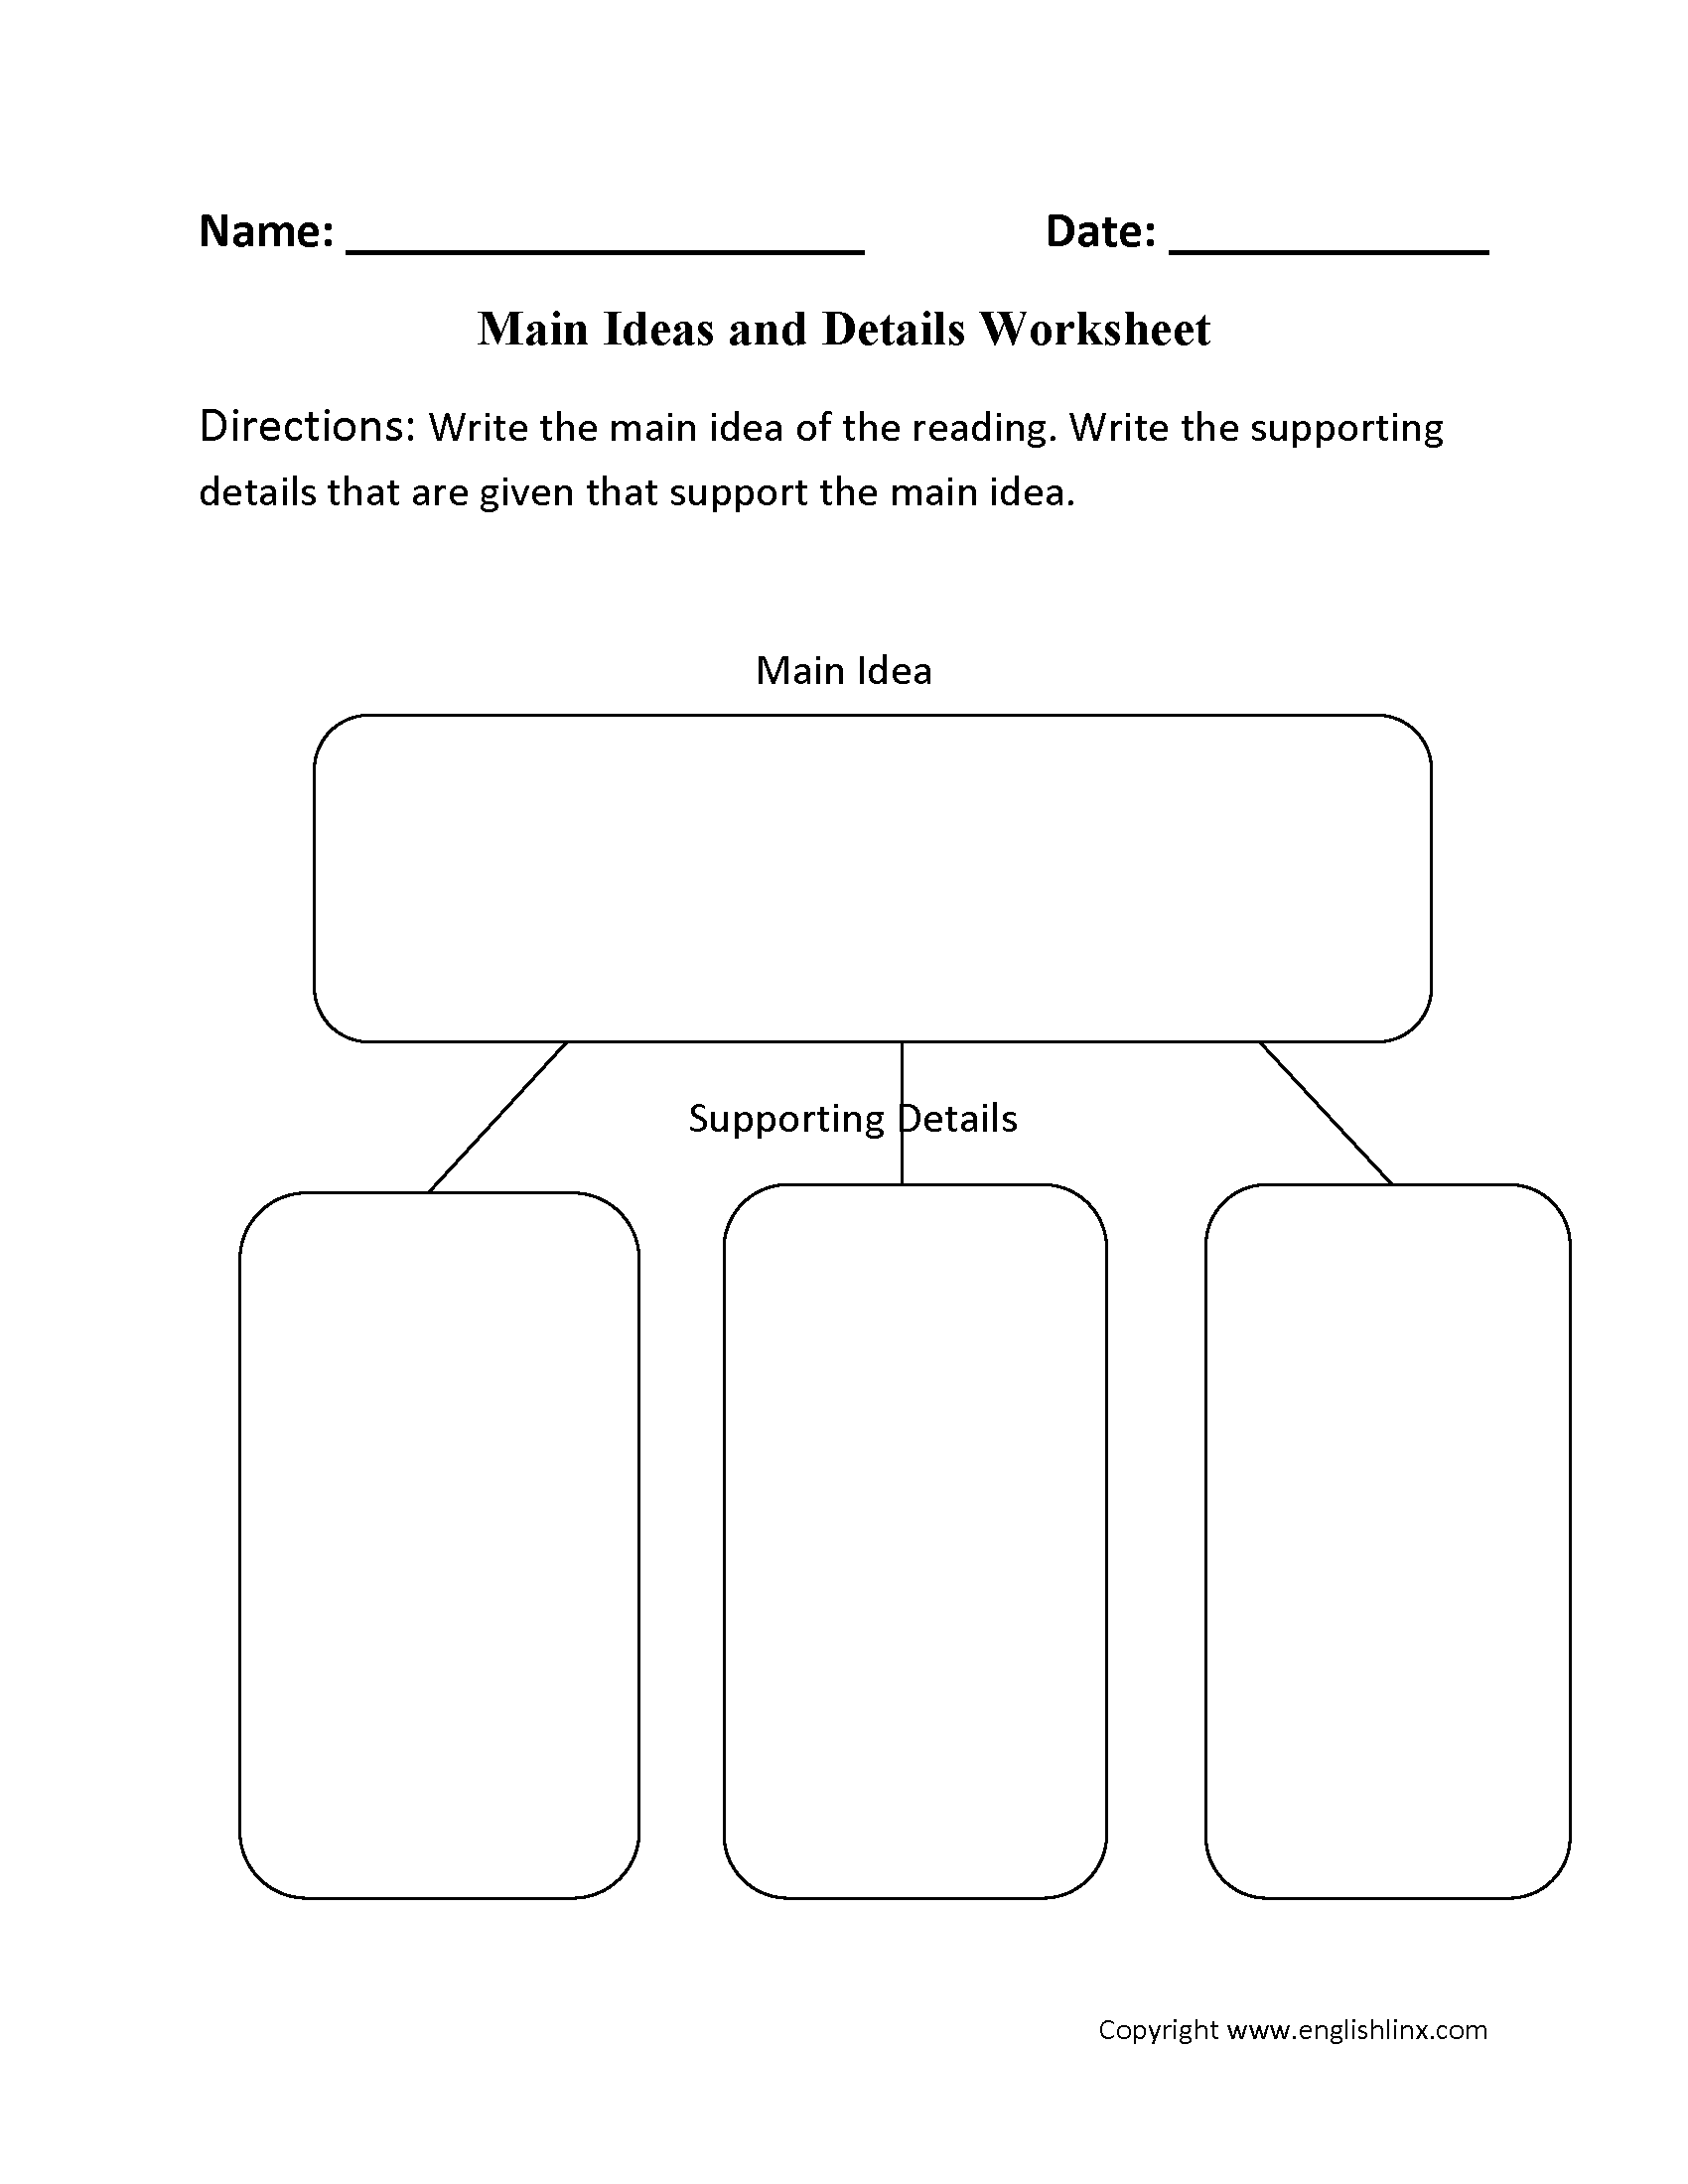 Worksheets Main Idea And Details Worksheets reading worksheets main idea and details worksheet